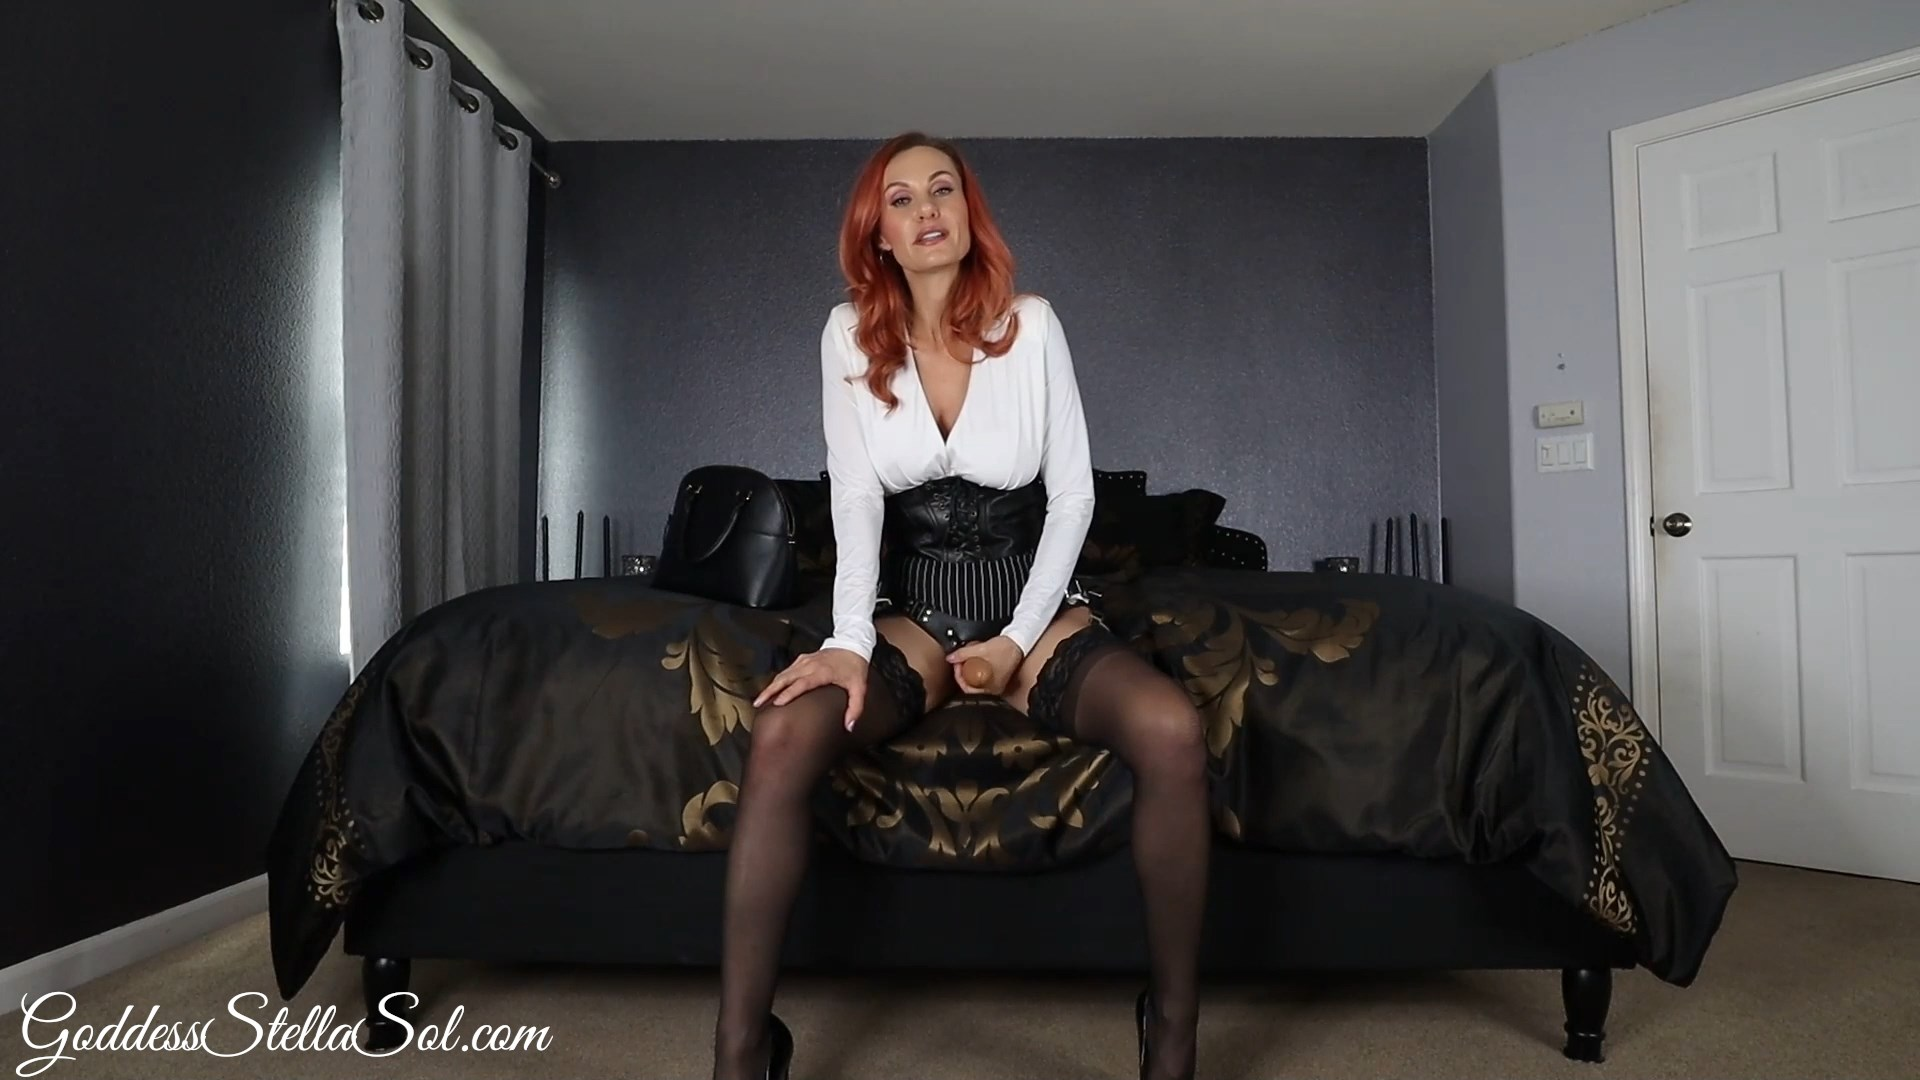 Goddess Stella Sol - StepMommy Strap-On Tease and Denial